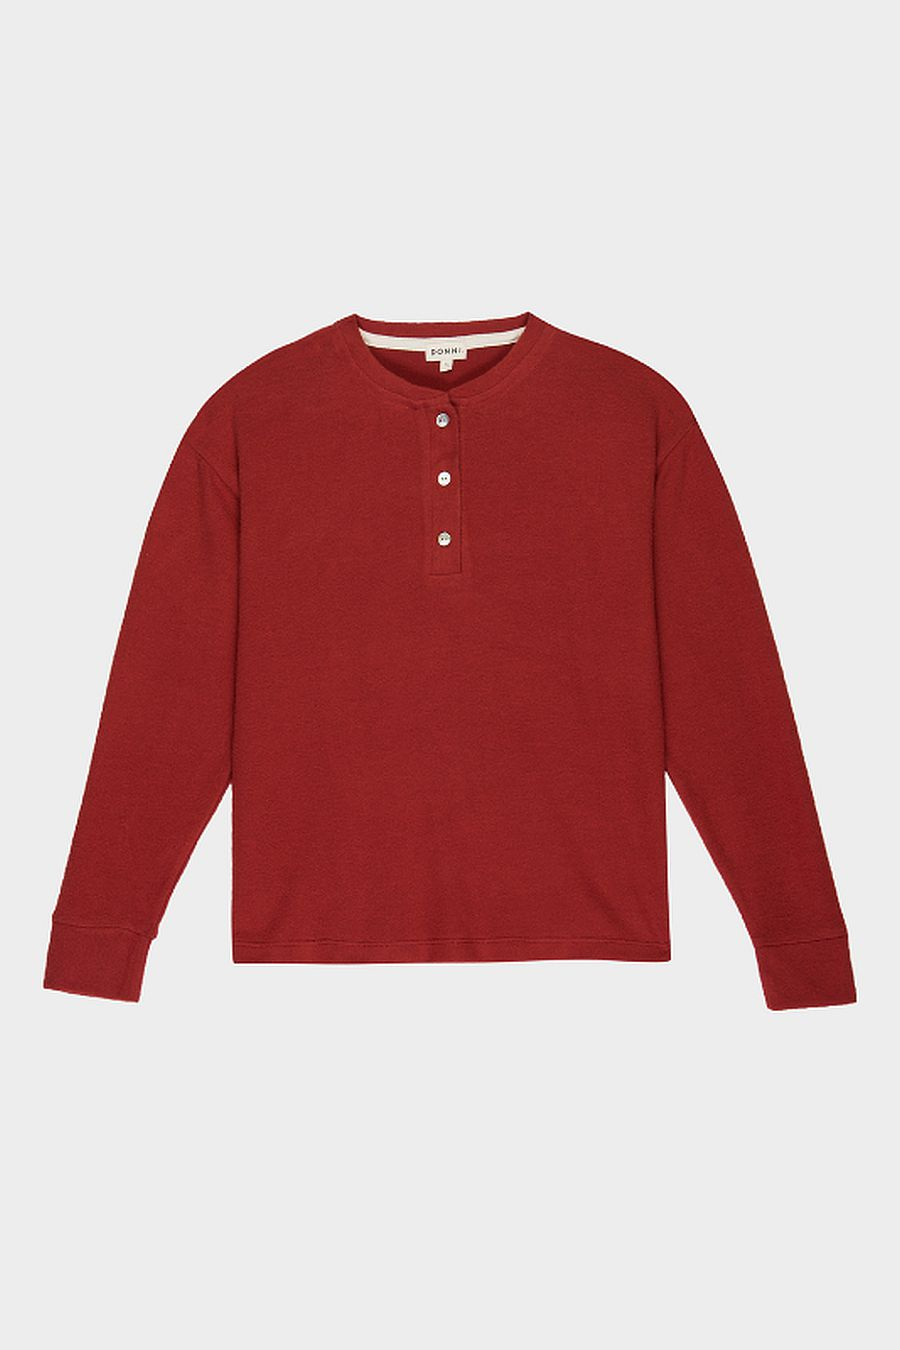 DONNI. Sweater Henley - Rust